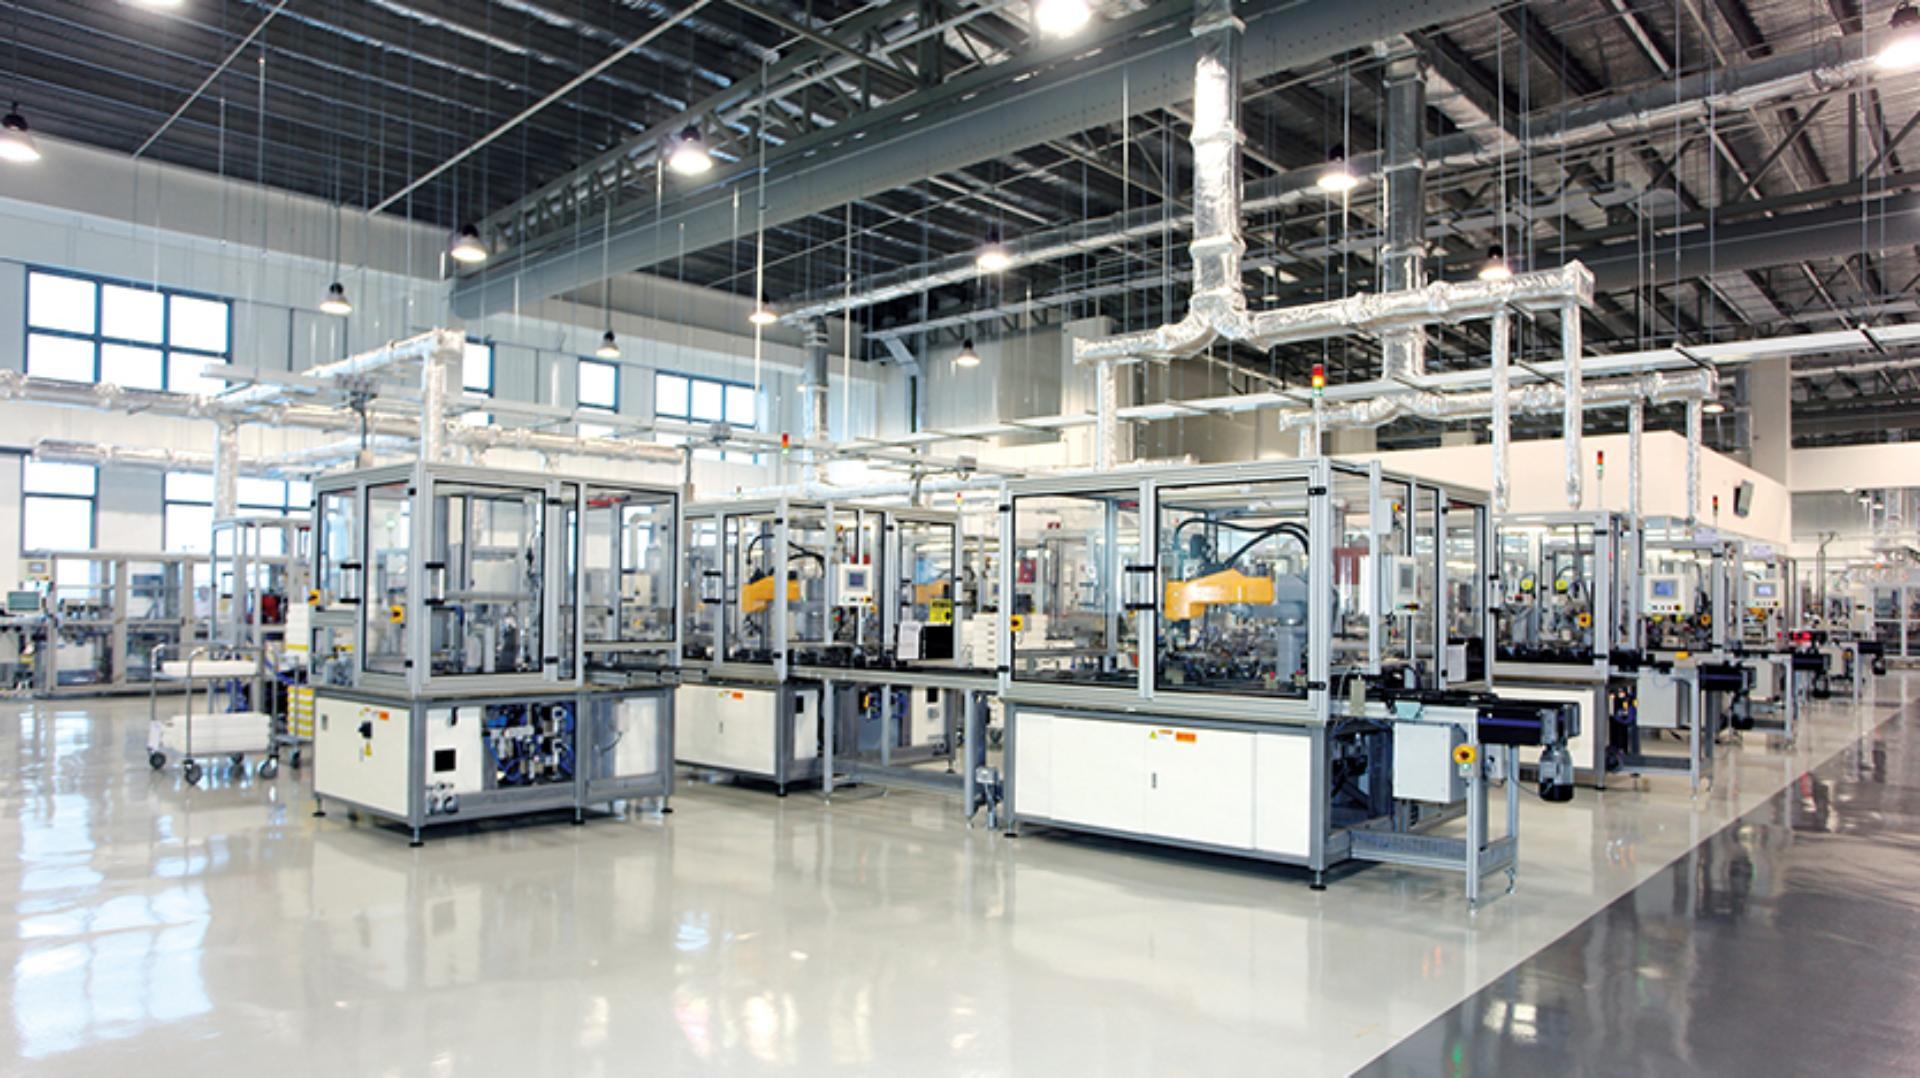 Sealed units within the Singapore Advanced Manufacturing facility